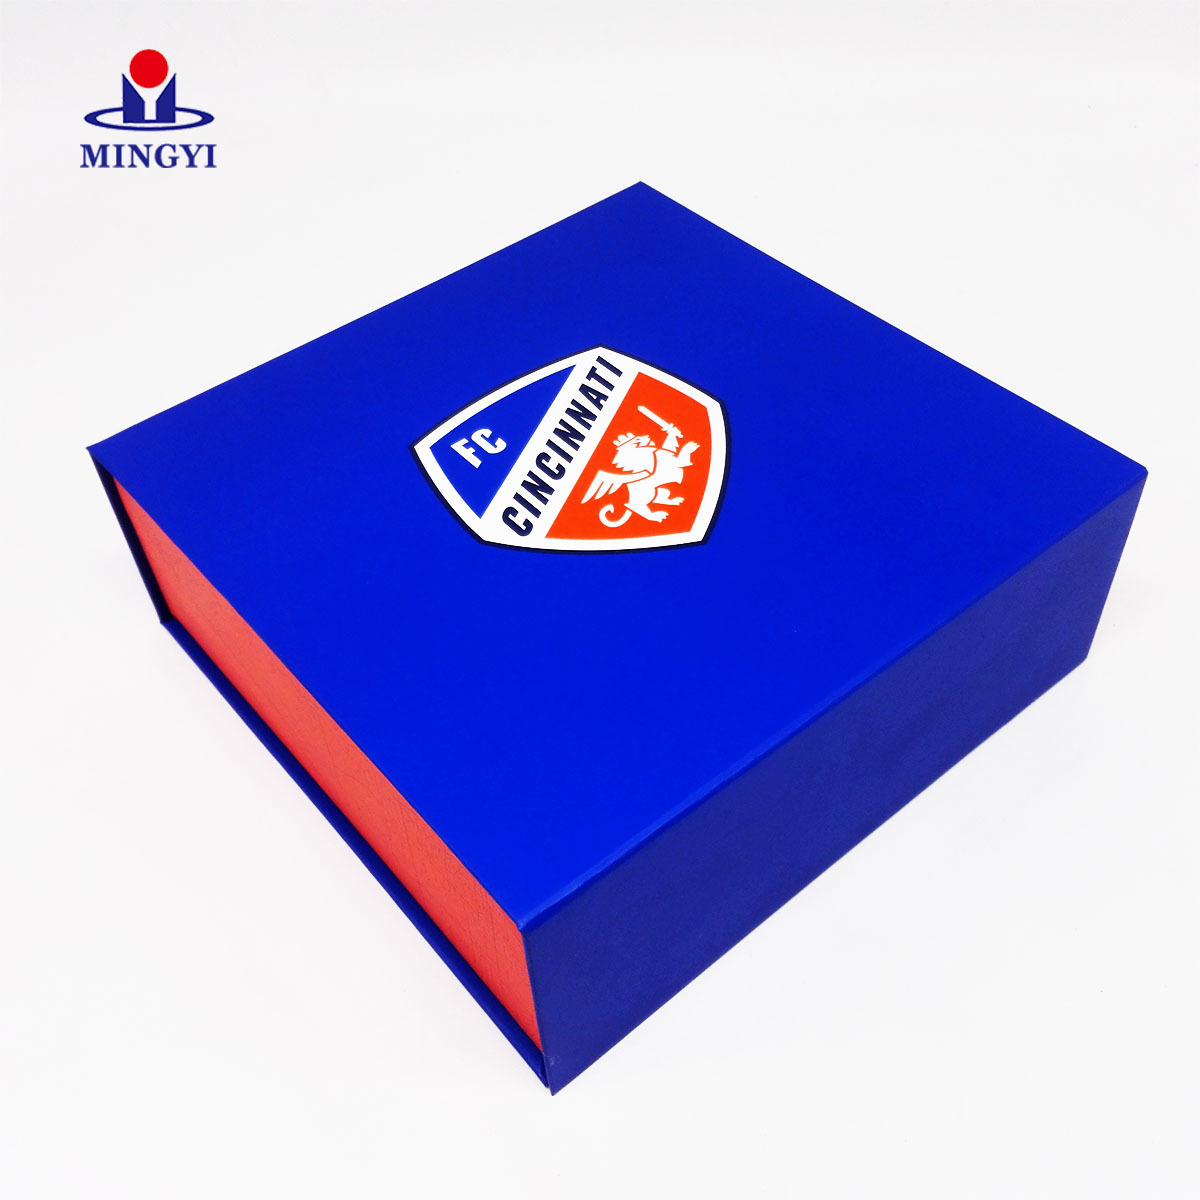 superior magnetic watch gift box sportrelated Mingyi Printing Brand